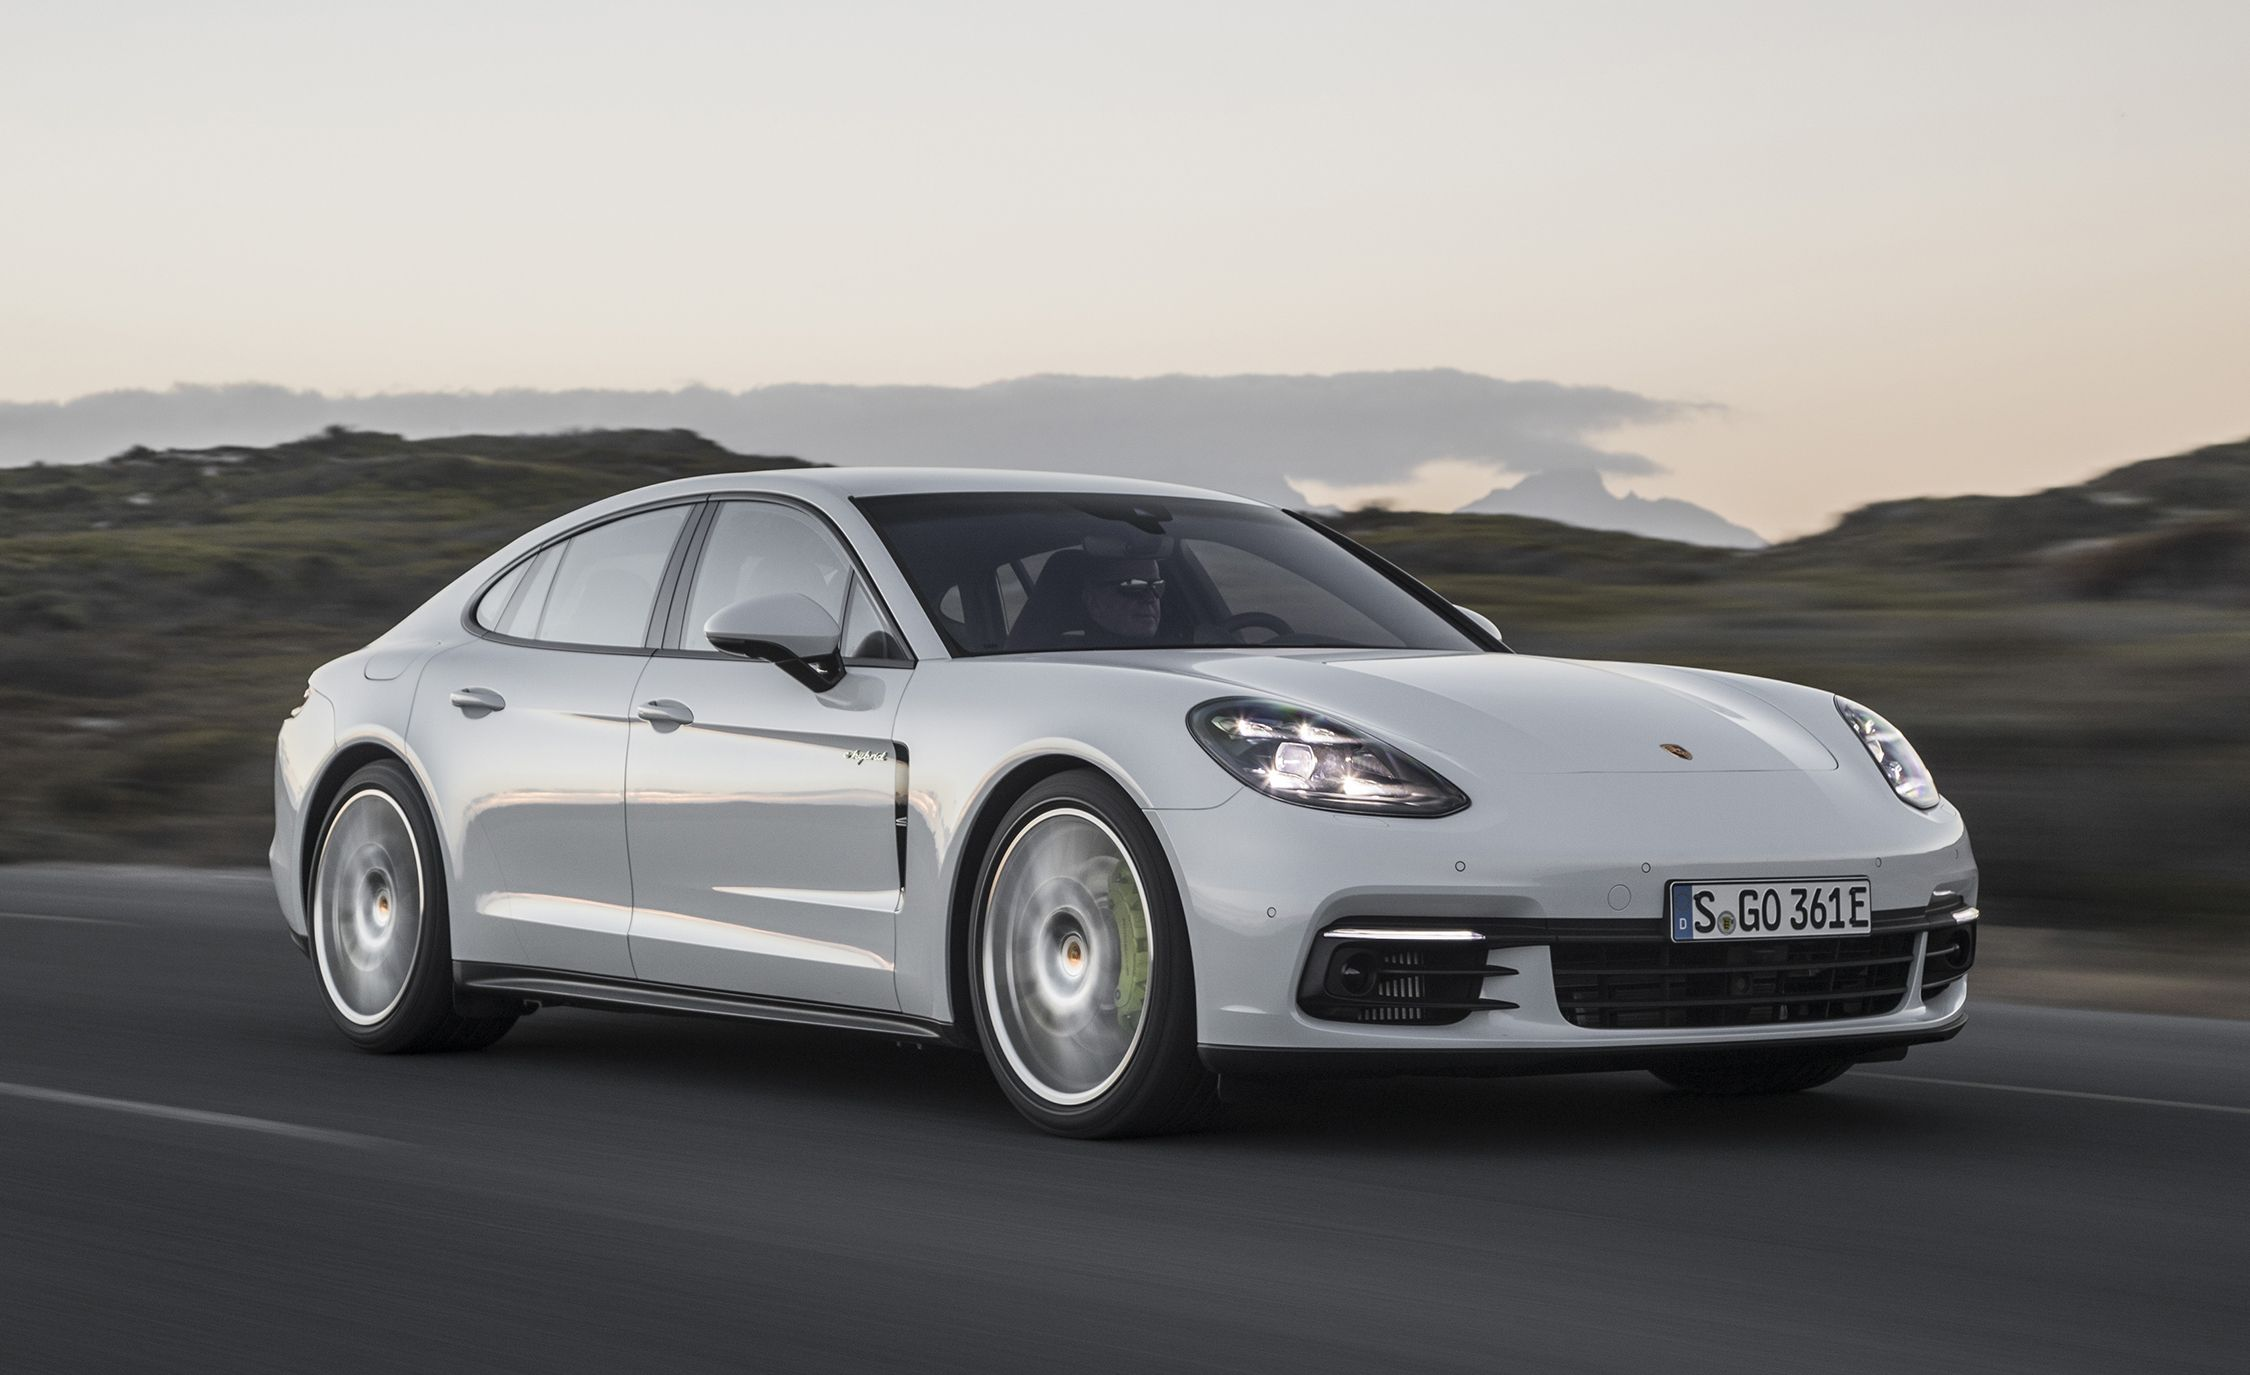 2018 Porsche Panamera 4 E Hybrid Plug In First Drive 8211 Review Car And Driver